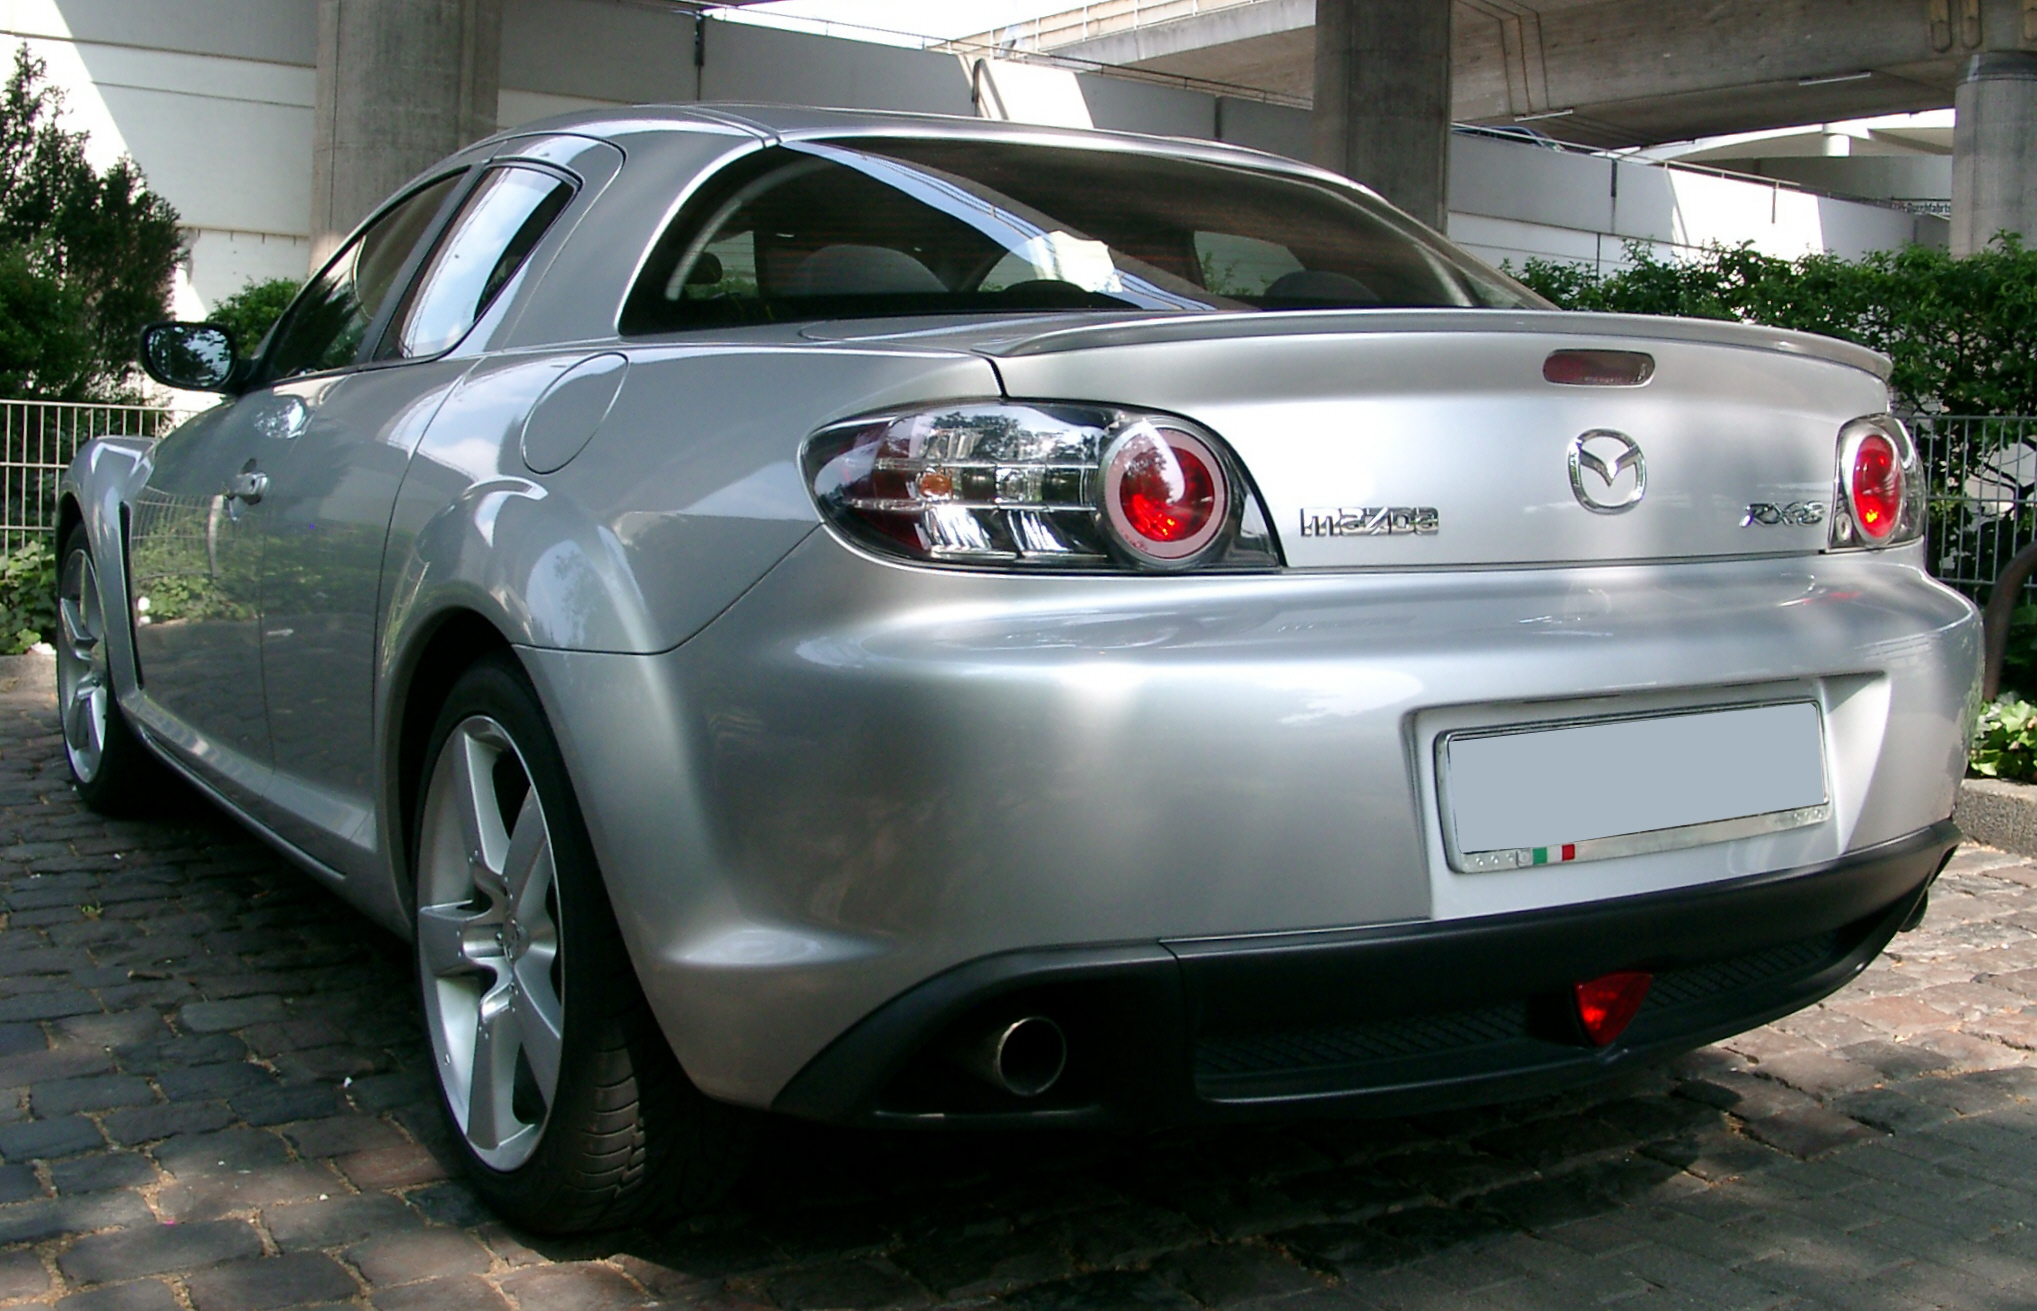 Description Mazda Rx8 Rear 20070523